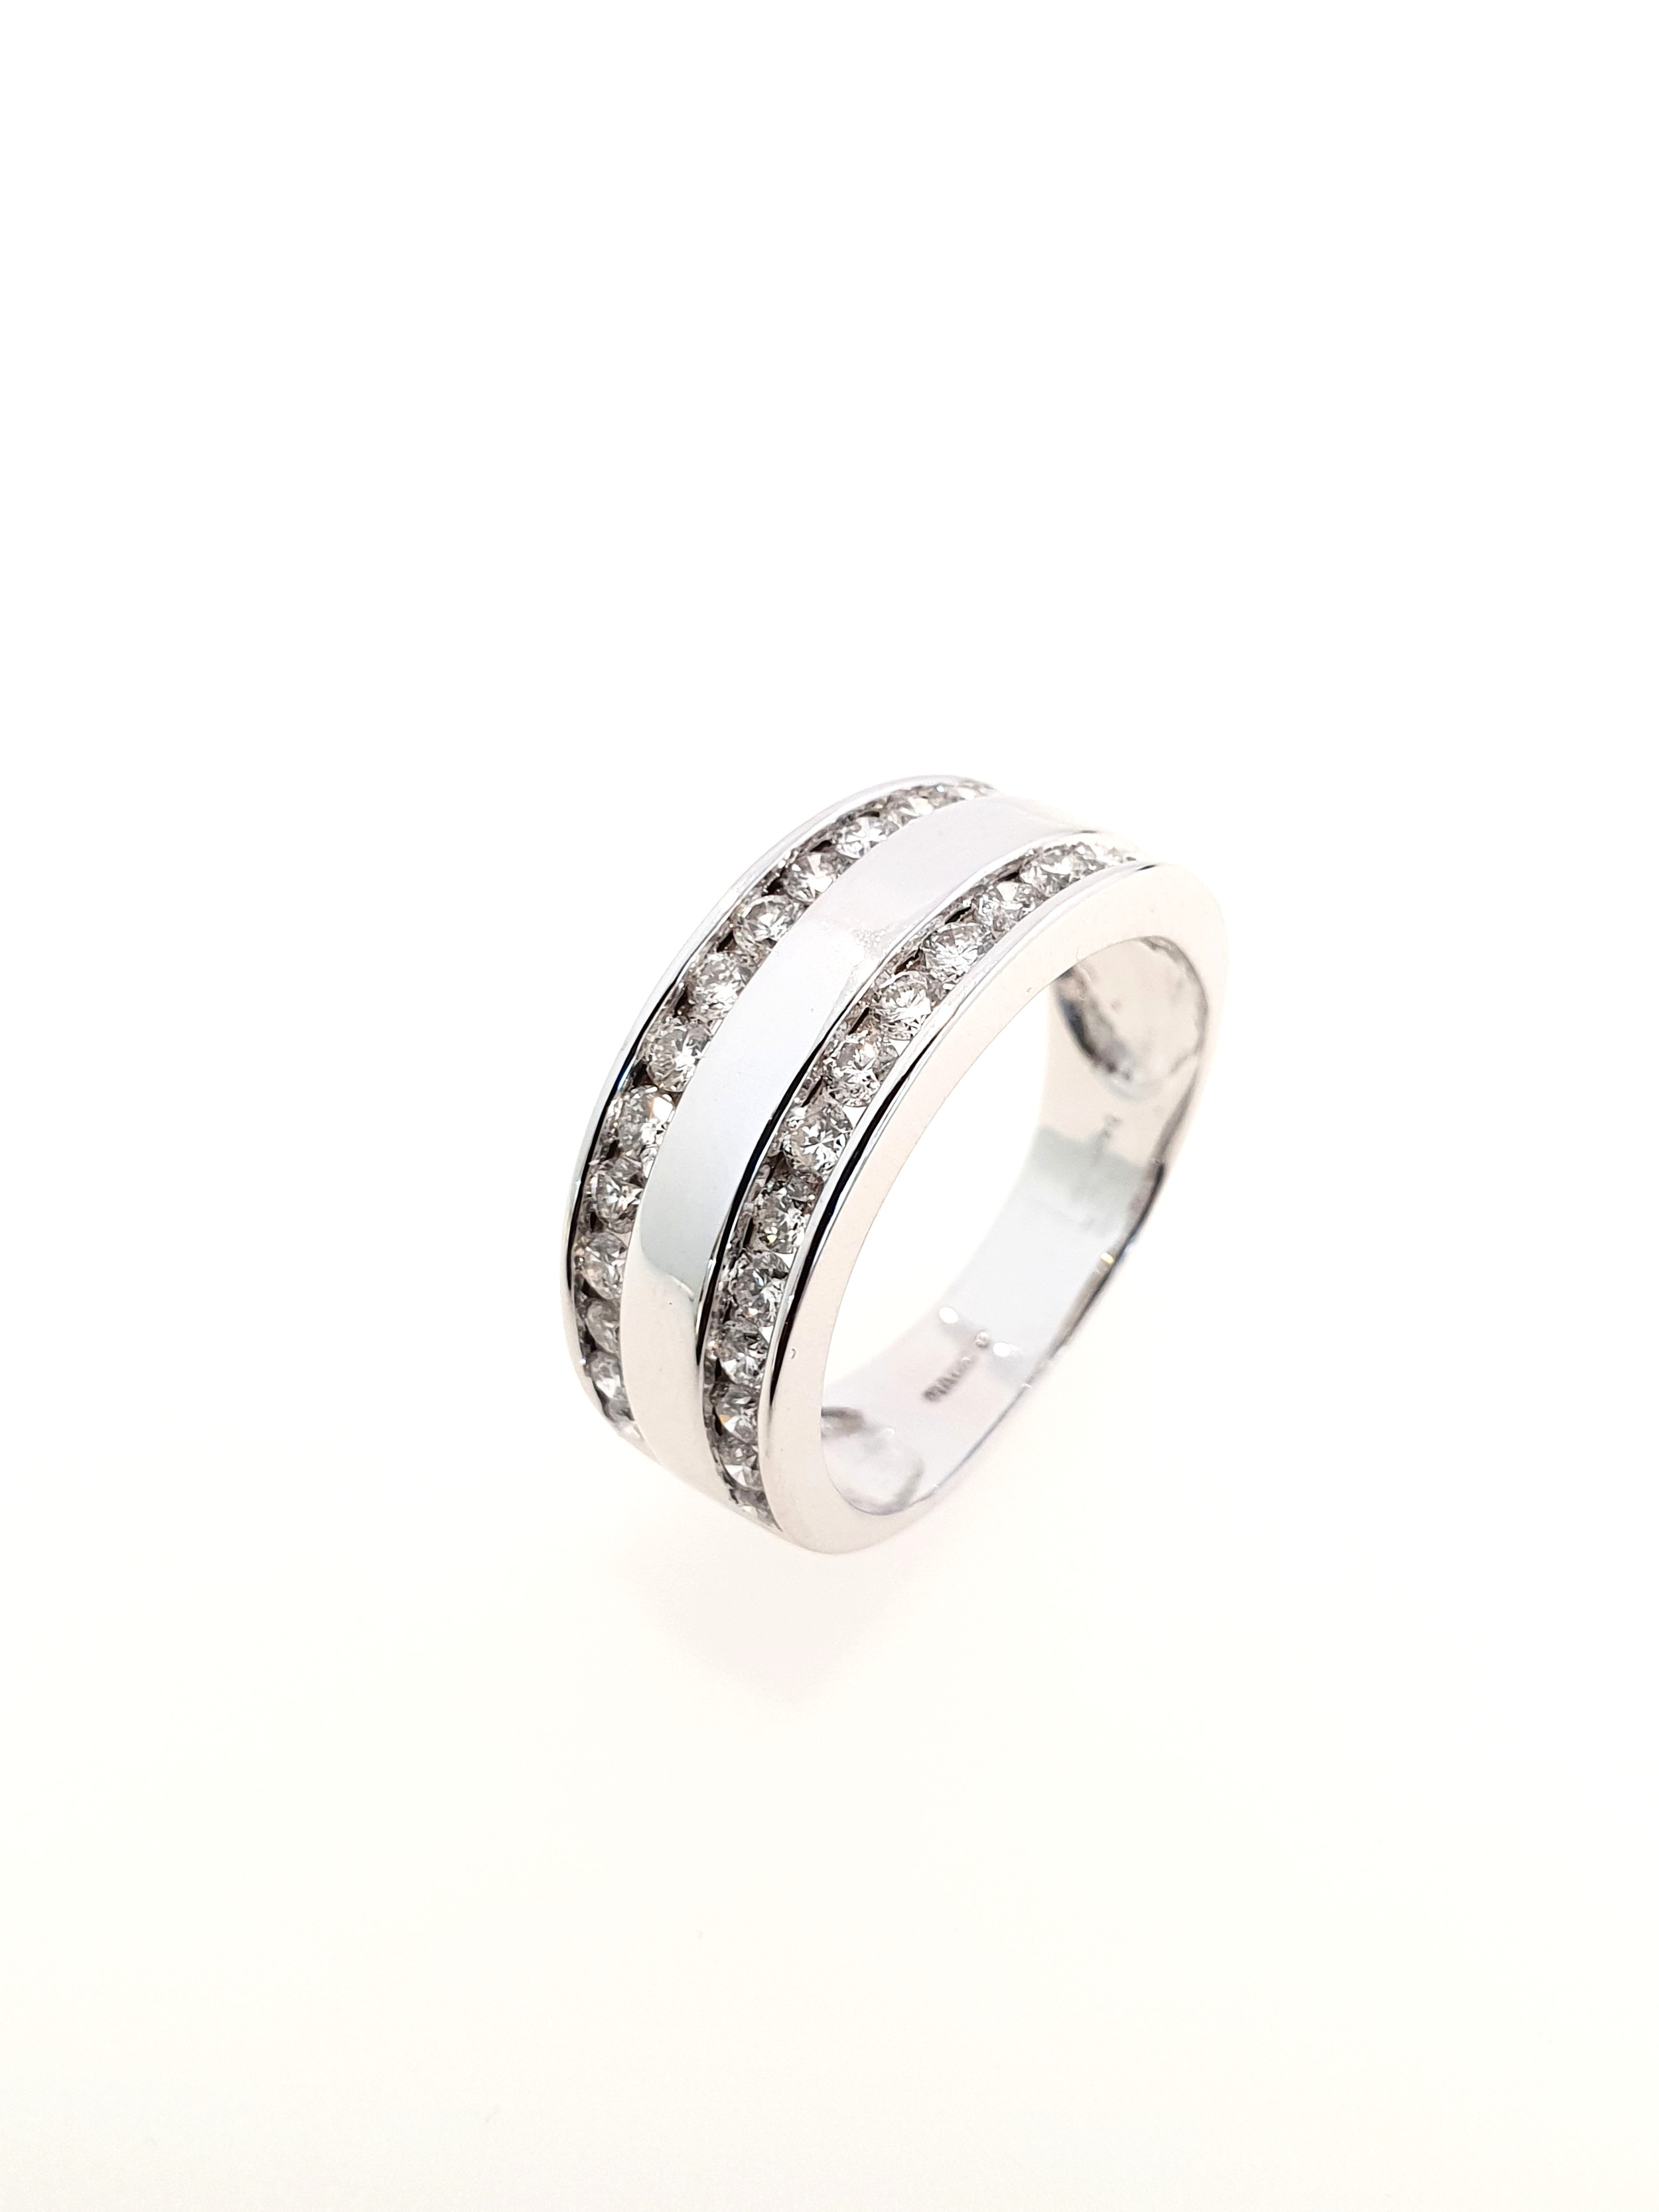 10ct White Gold Diamond Band  Diamond Weight: .85ct  Colour: H  Clarity: I1  Our Price: £1,700  Stock Code: Y776